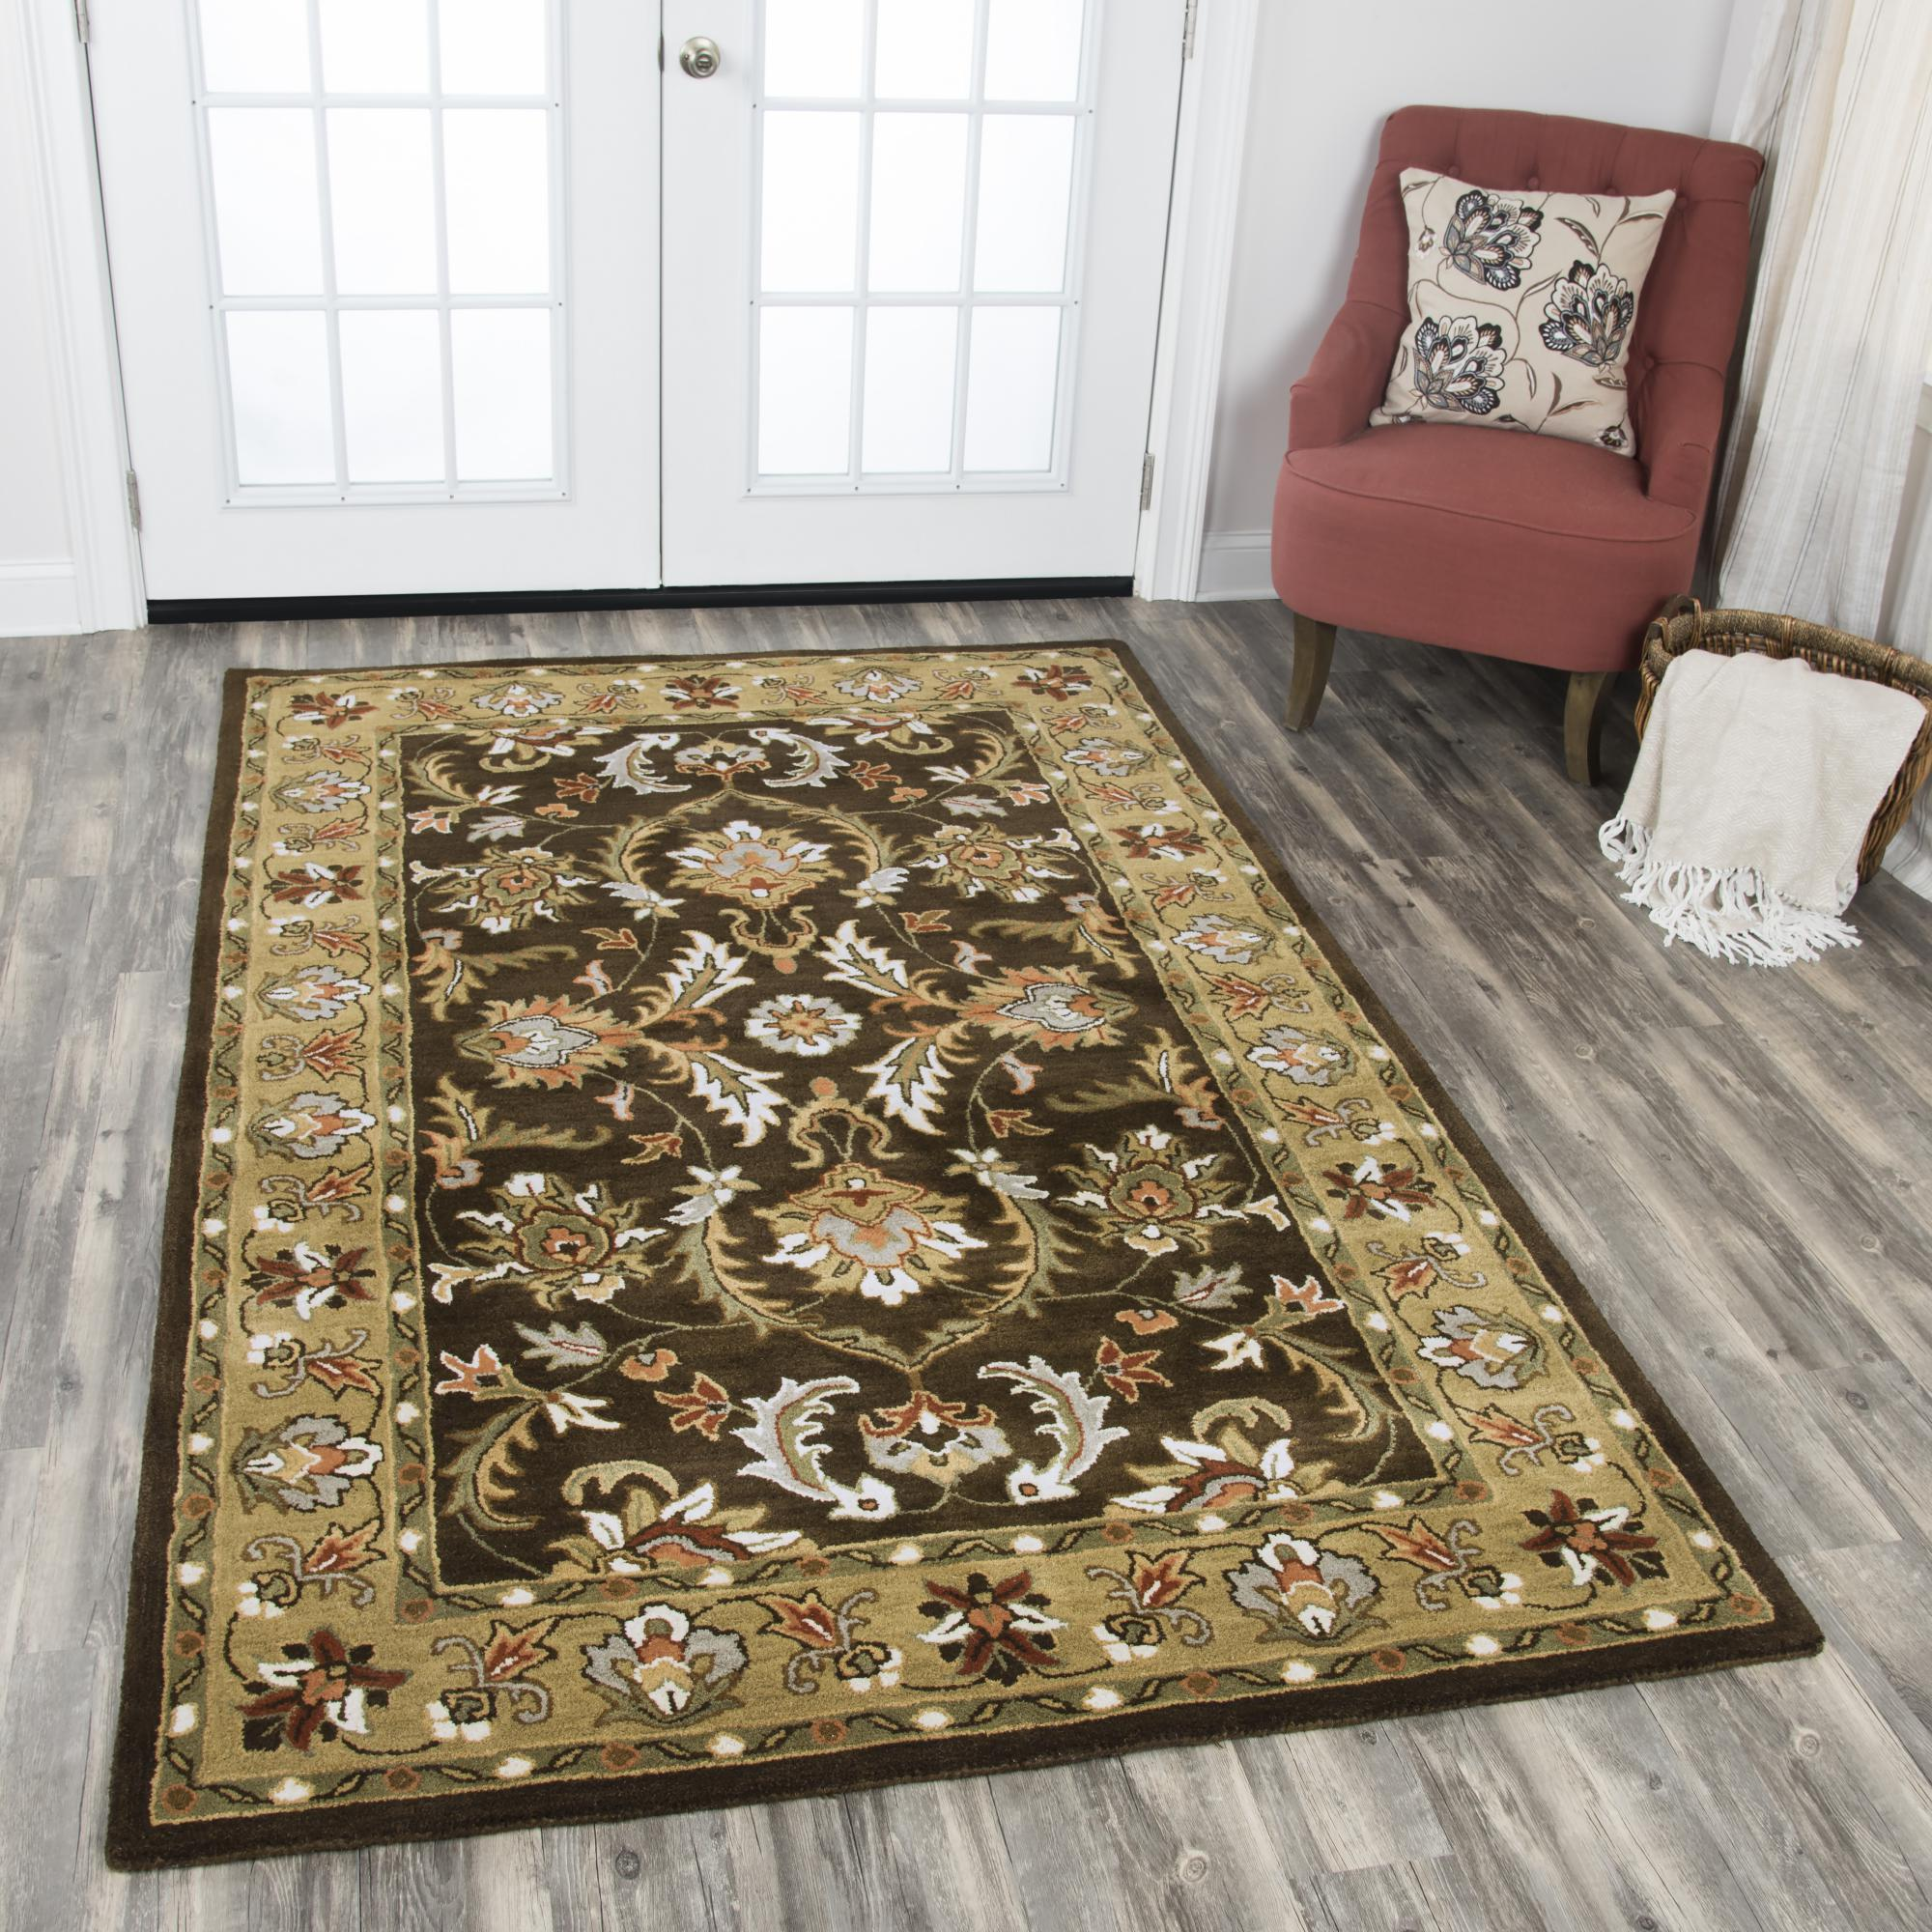 Rizzy Home SA978A Brown 5' x 8' Hand-Tufted Area Rug